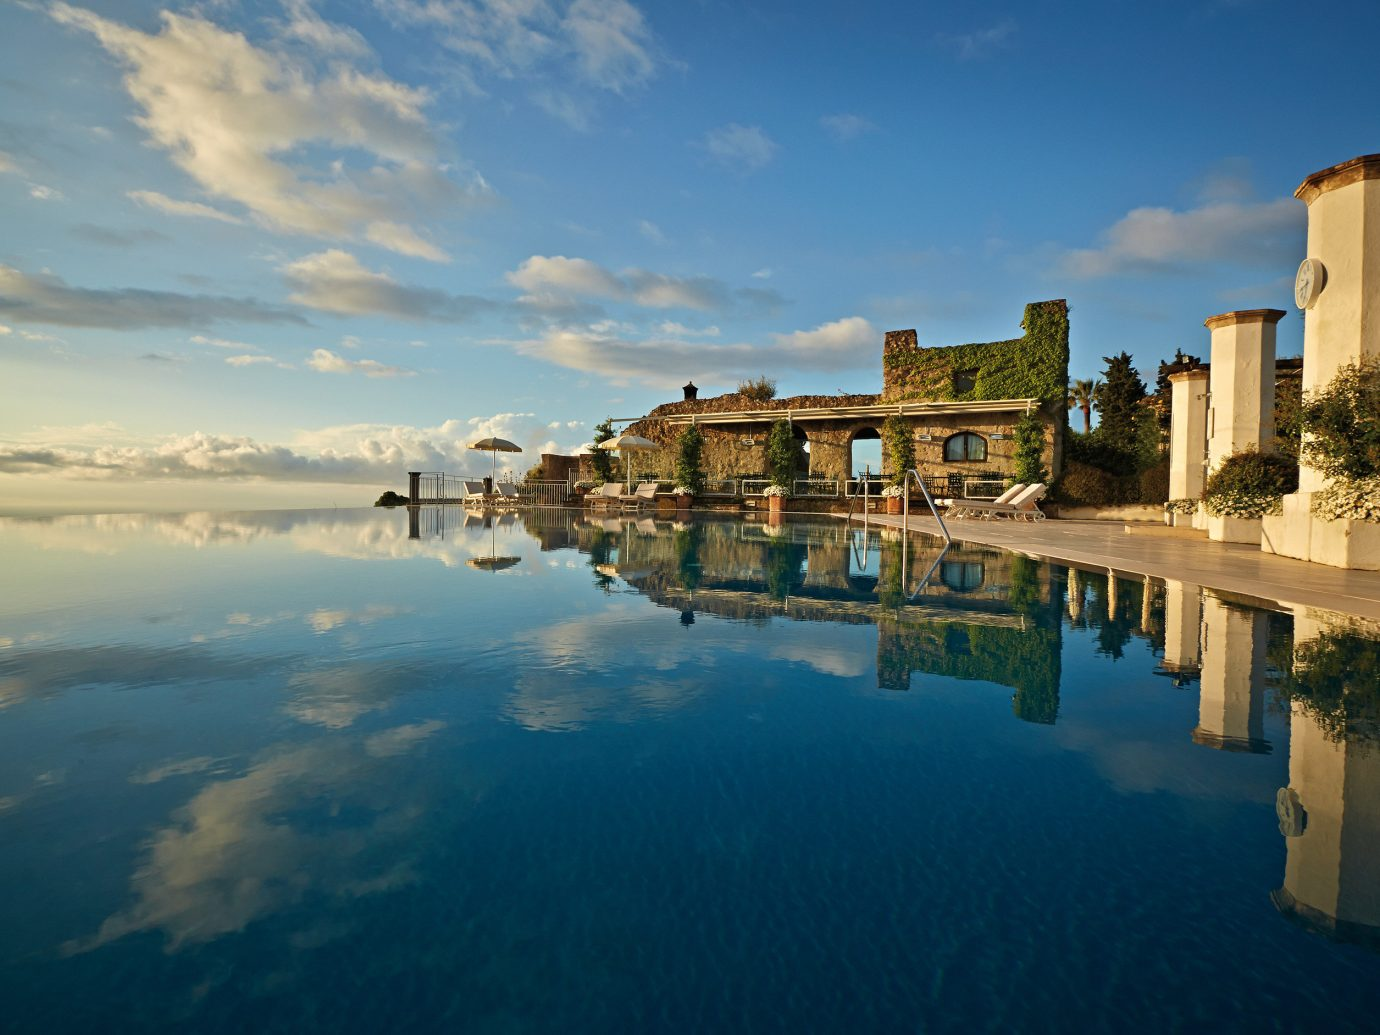 infinity pool at Belmond Hotel Caruso, Ravello